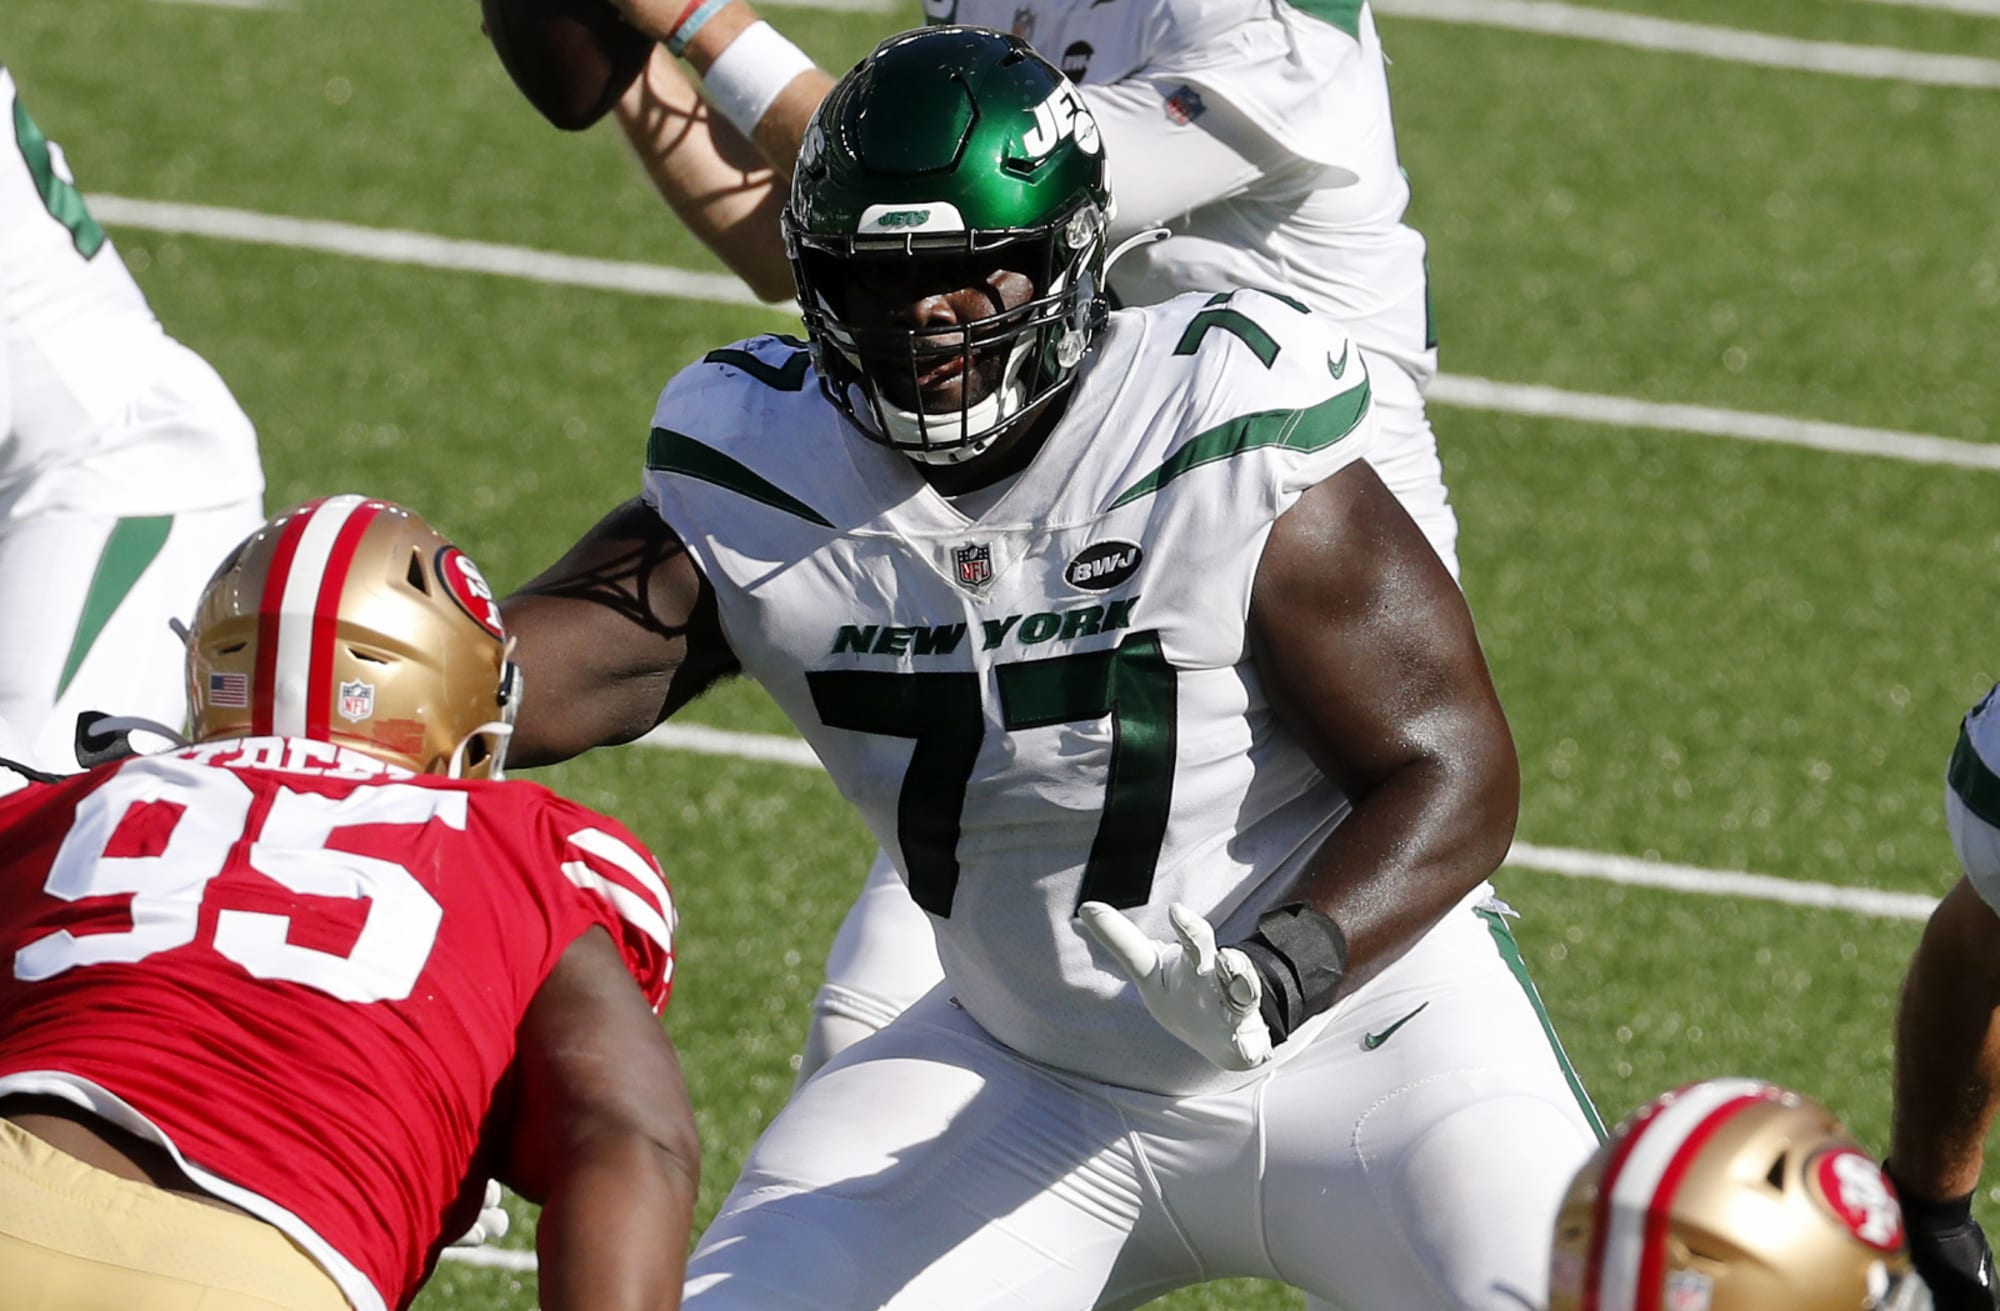 Could Mekhi Becton be a Hall of Fame talent for the Jets?